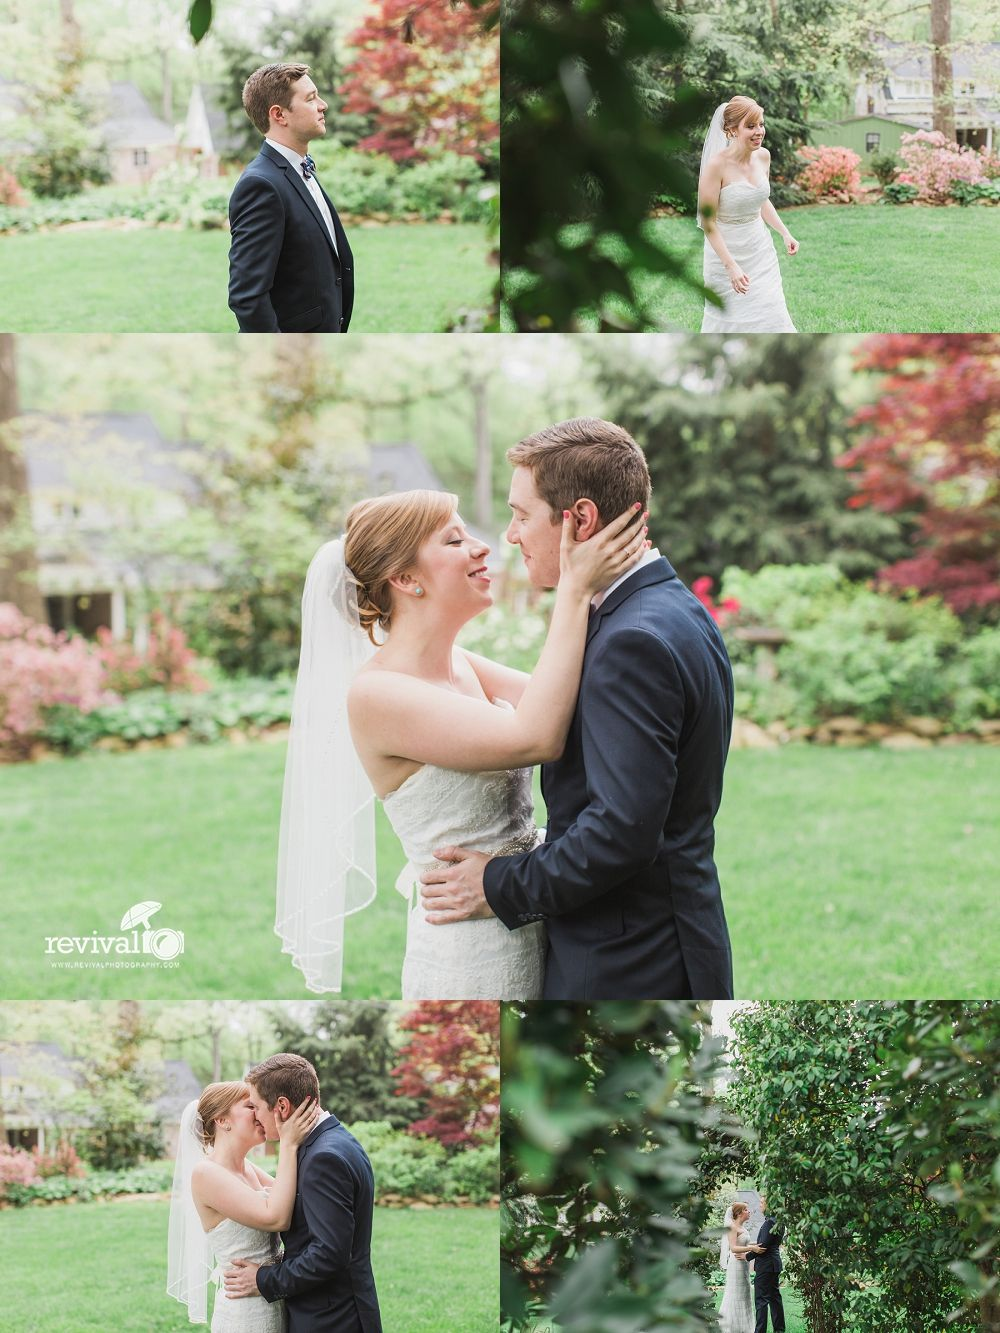 Betsy Mark A Garden Wedding In Hickory Nc By Revival Photography Revival Photography Husband Wife Photographers Based In North Carolina Specializing I Spring Garden Wedding Garden Wedding Photography